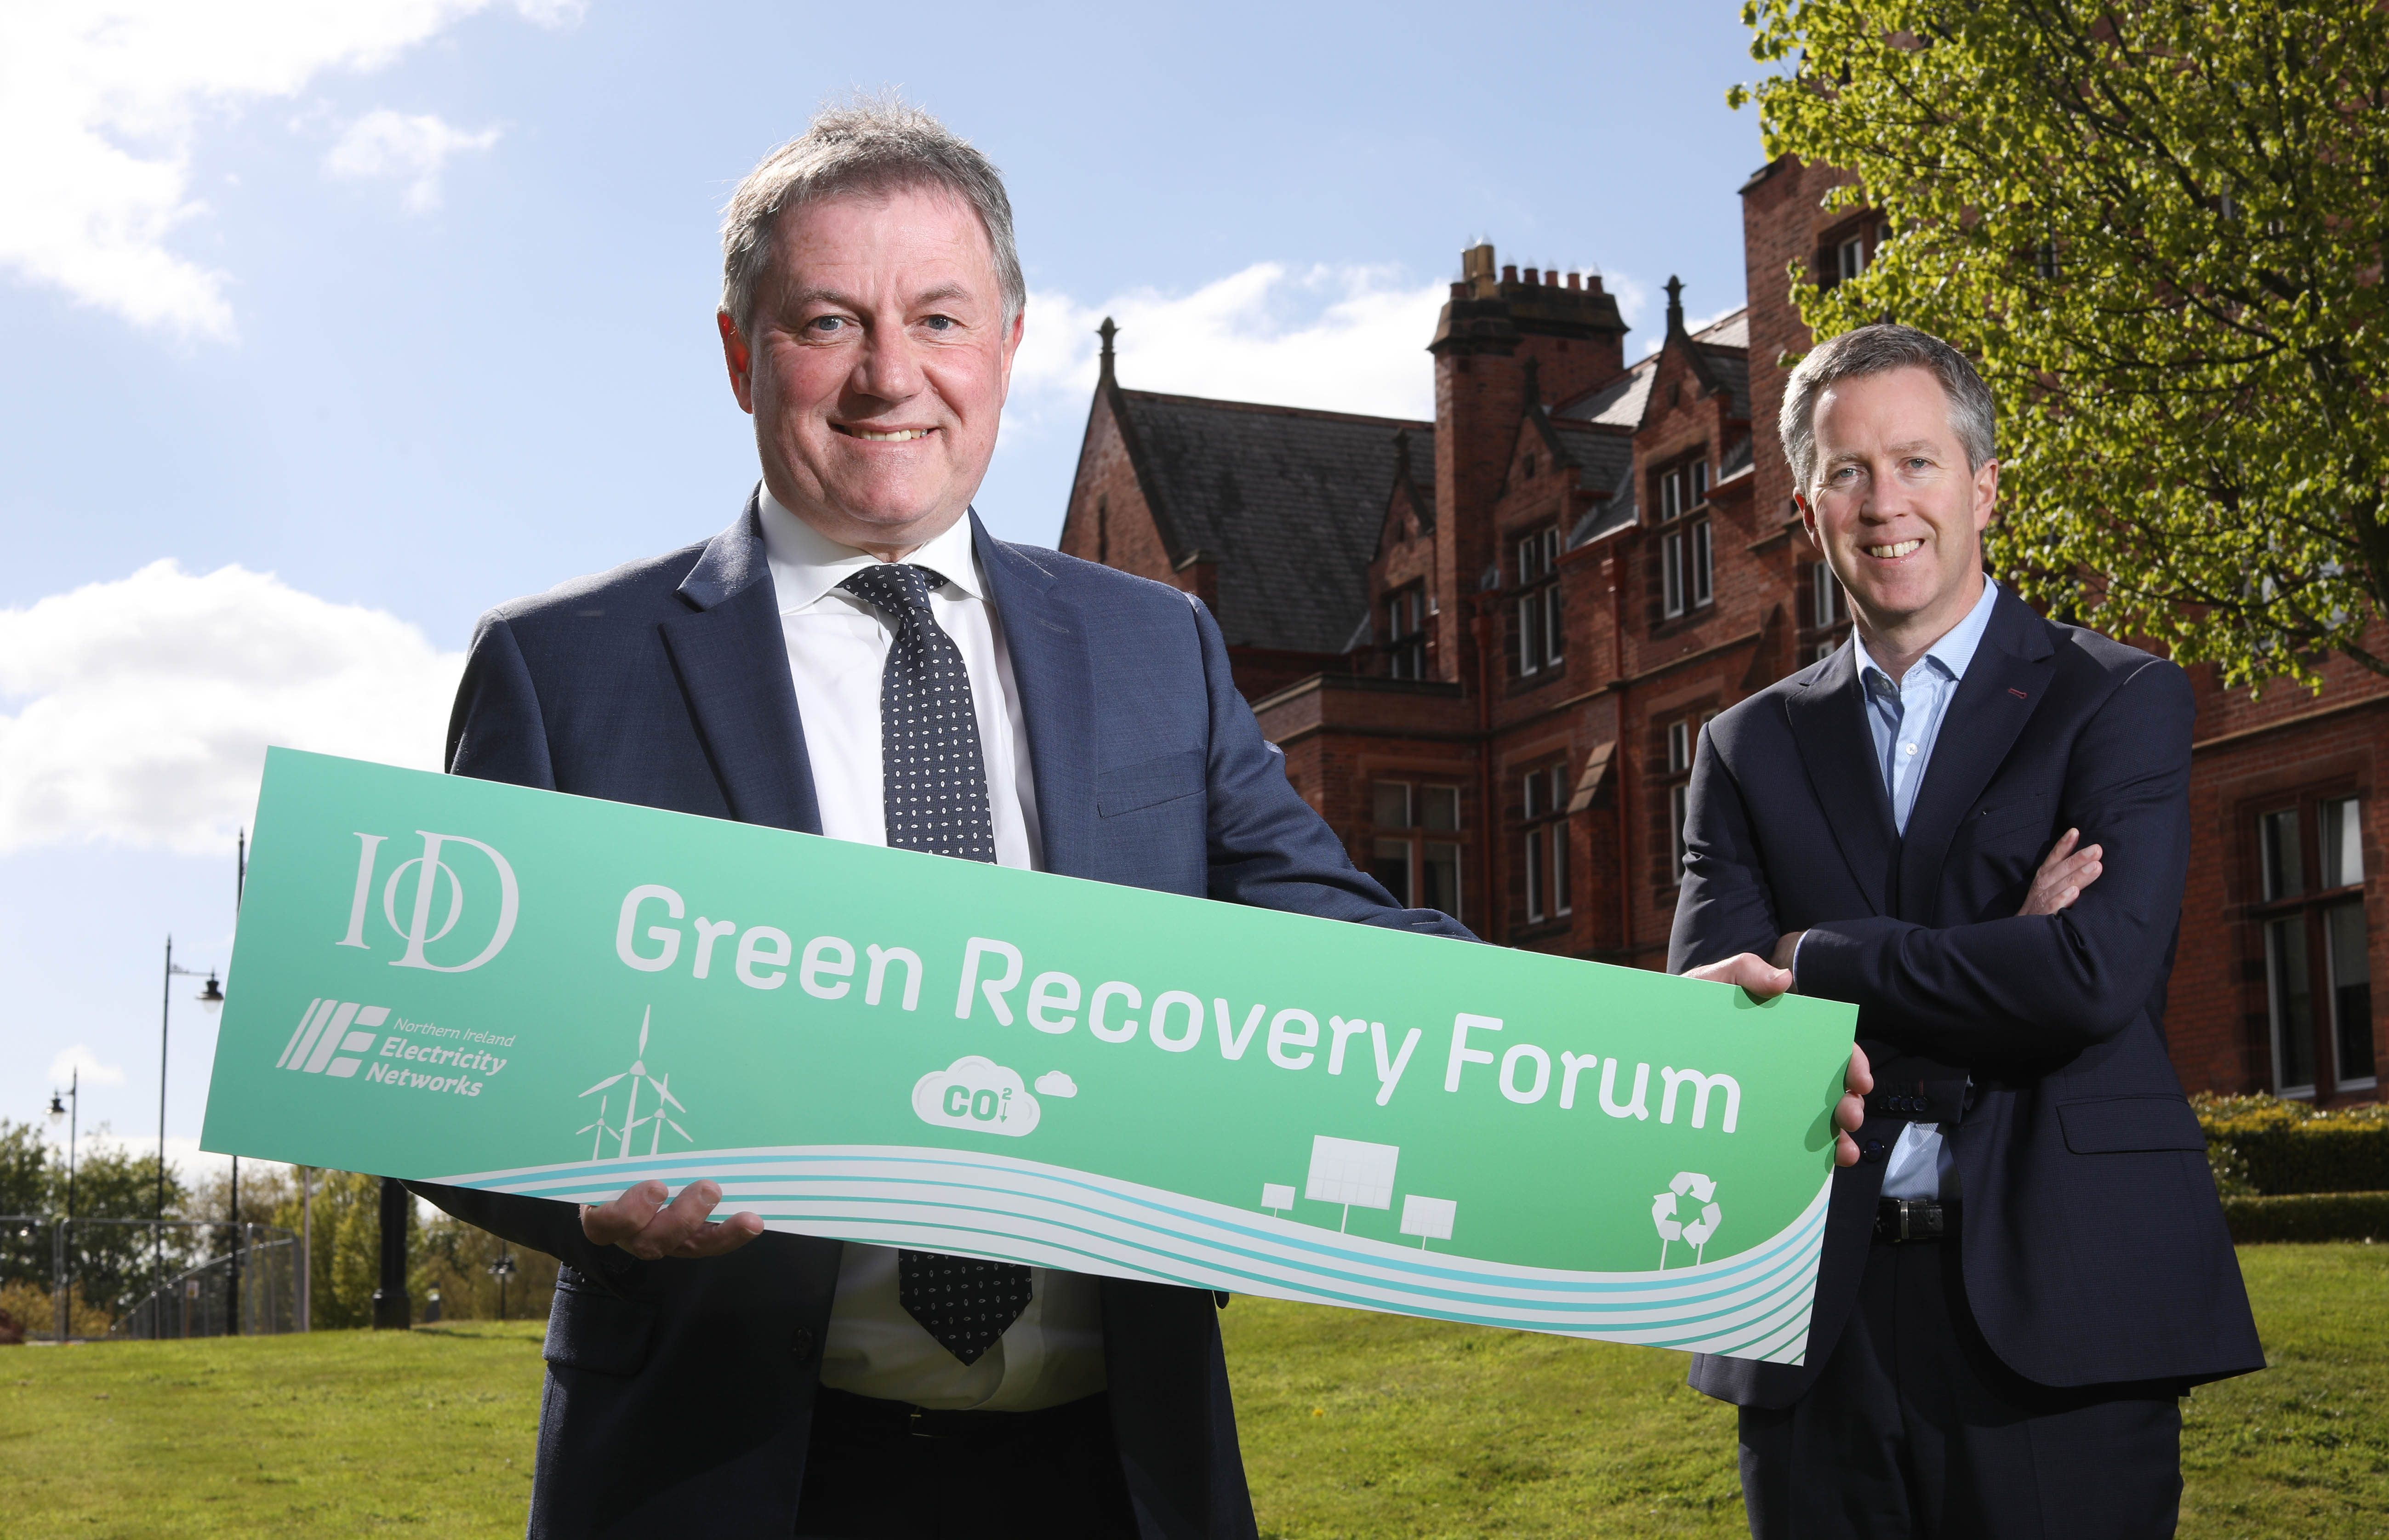 Green Recovery Forum